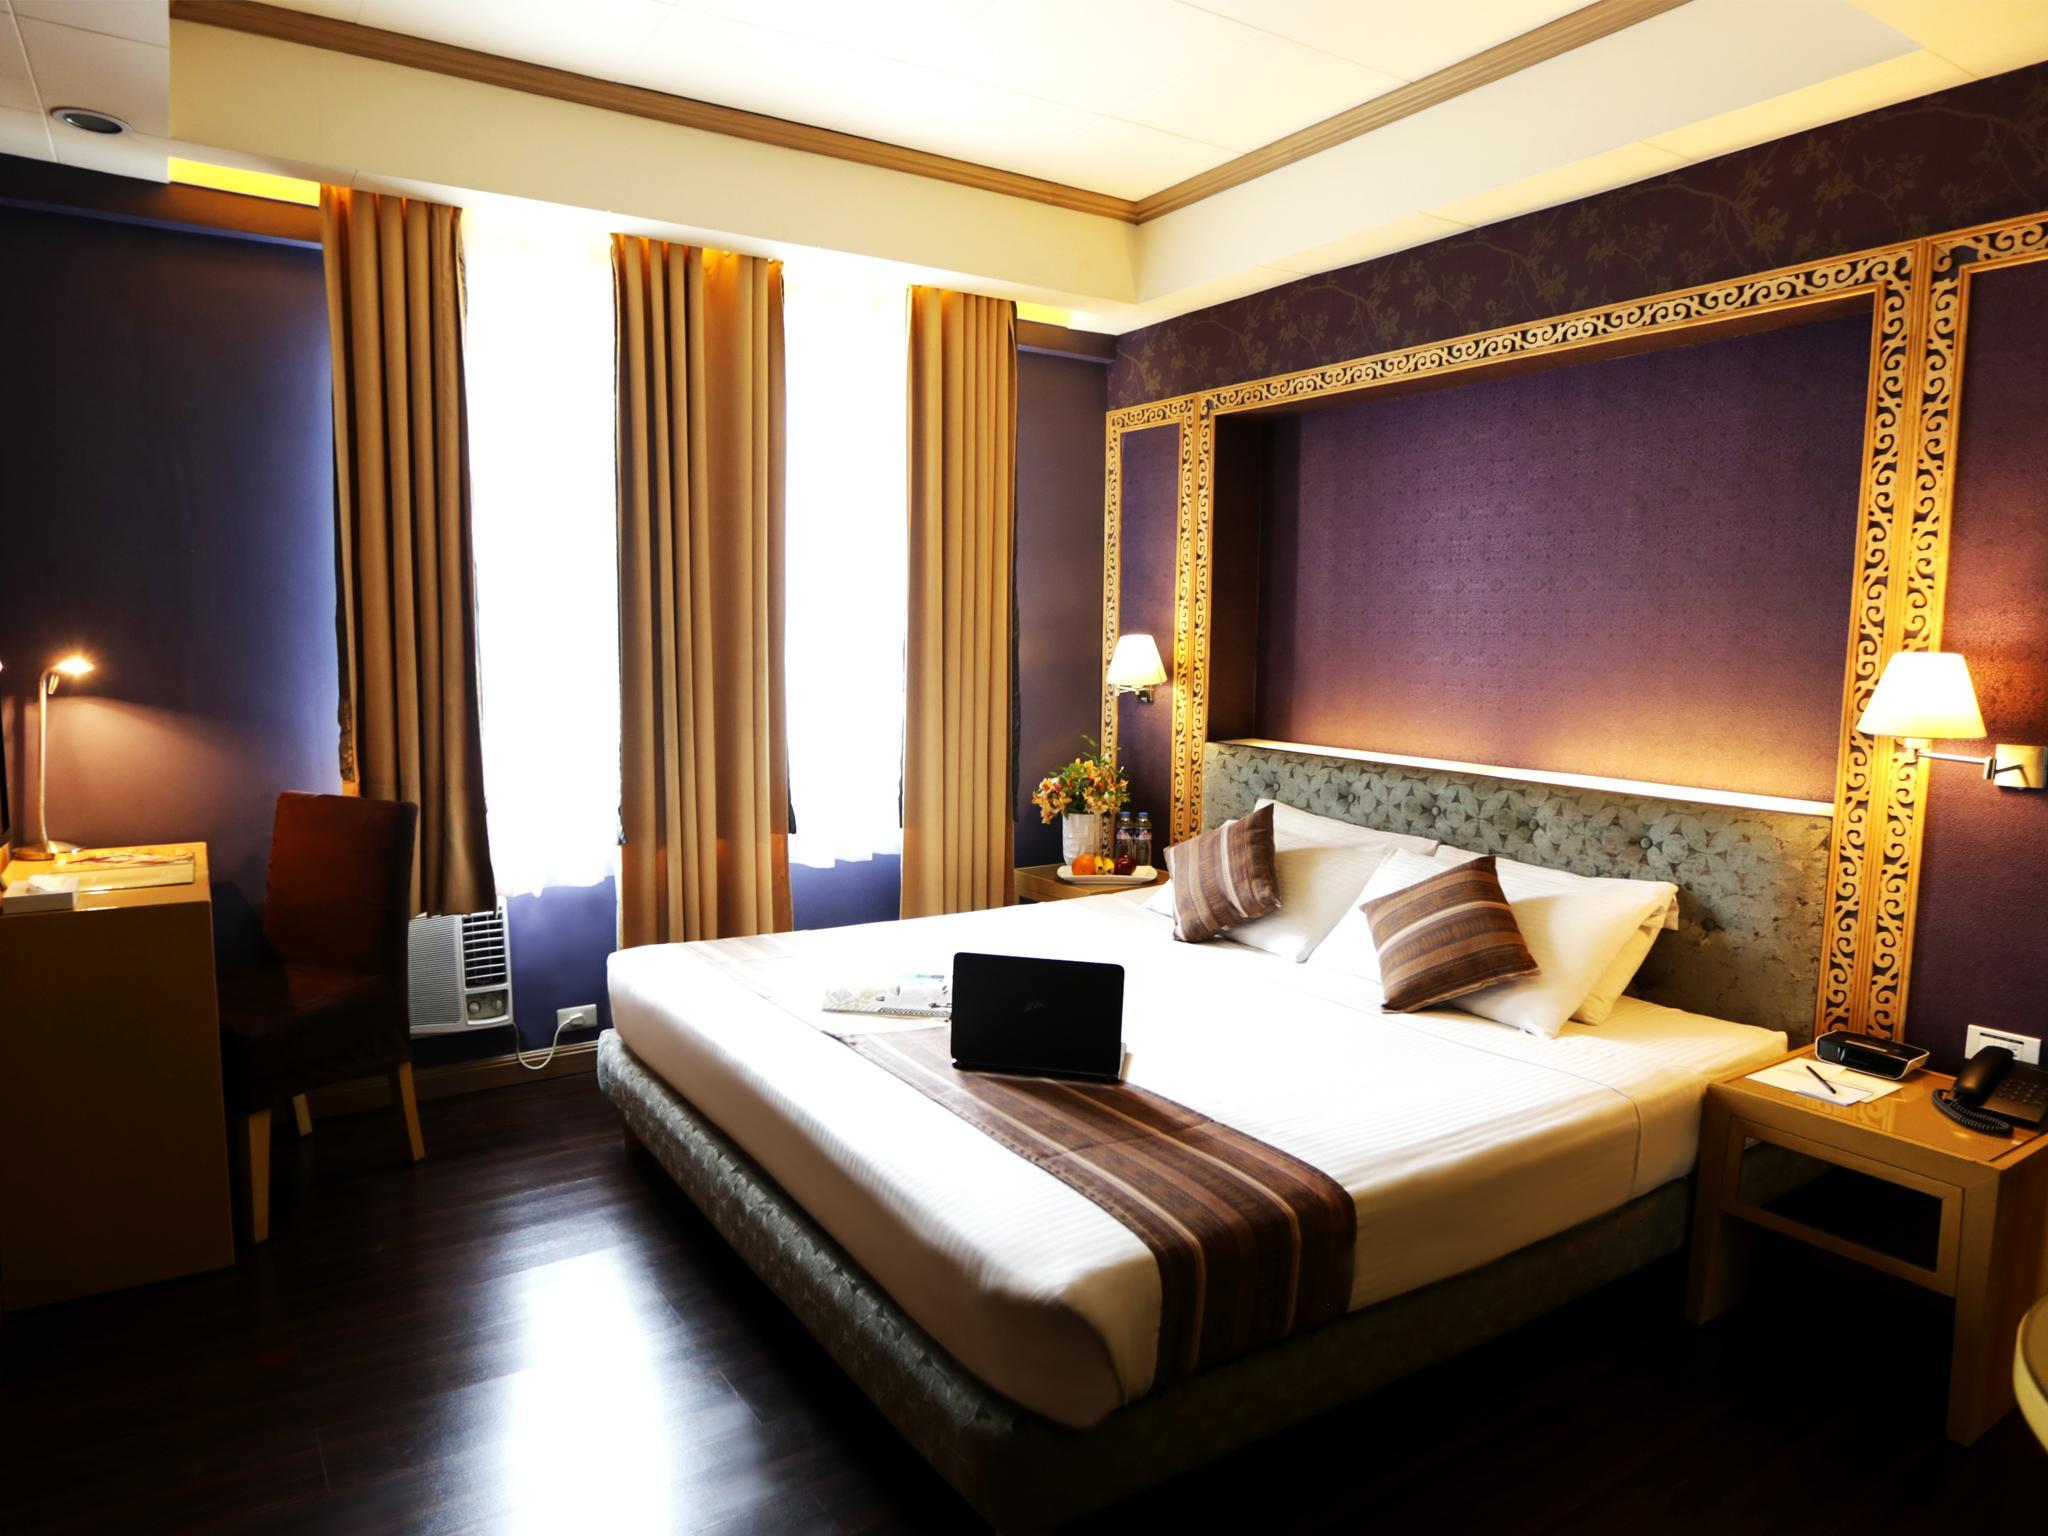 Kamar Deluxe dengan Kasur Queen – Bebas Asap Rokok (1 Queen Bed Deluxe Room, No Smoking)